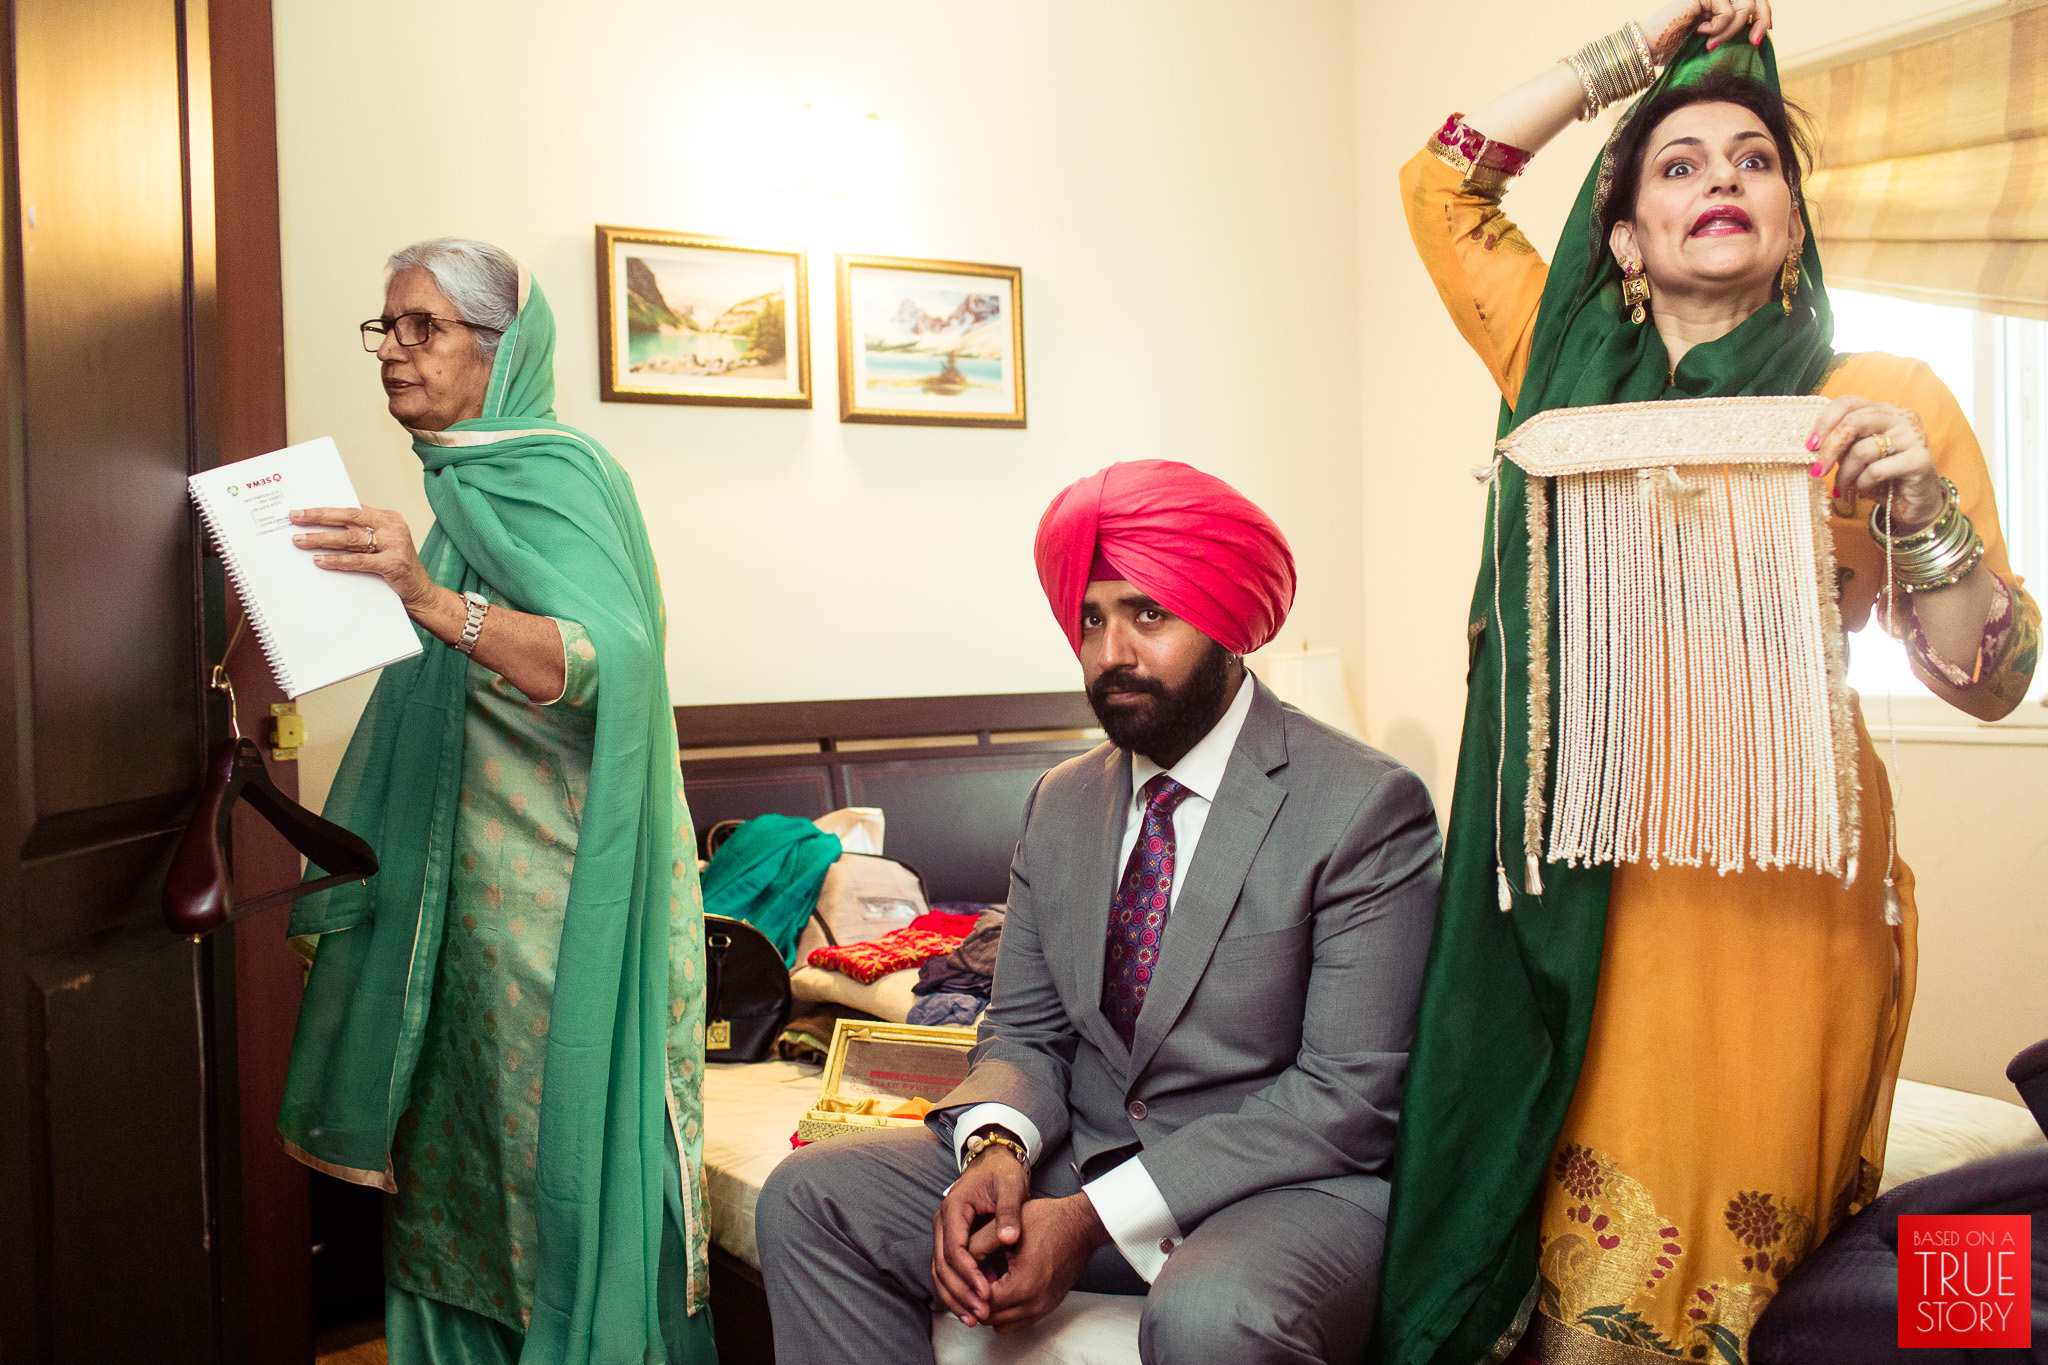 candid-photography-sikh-wedding-bangalore-0009.jpg